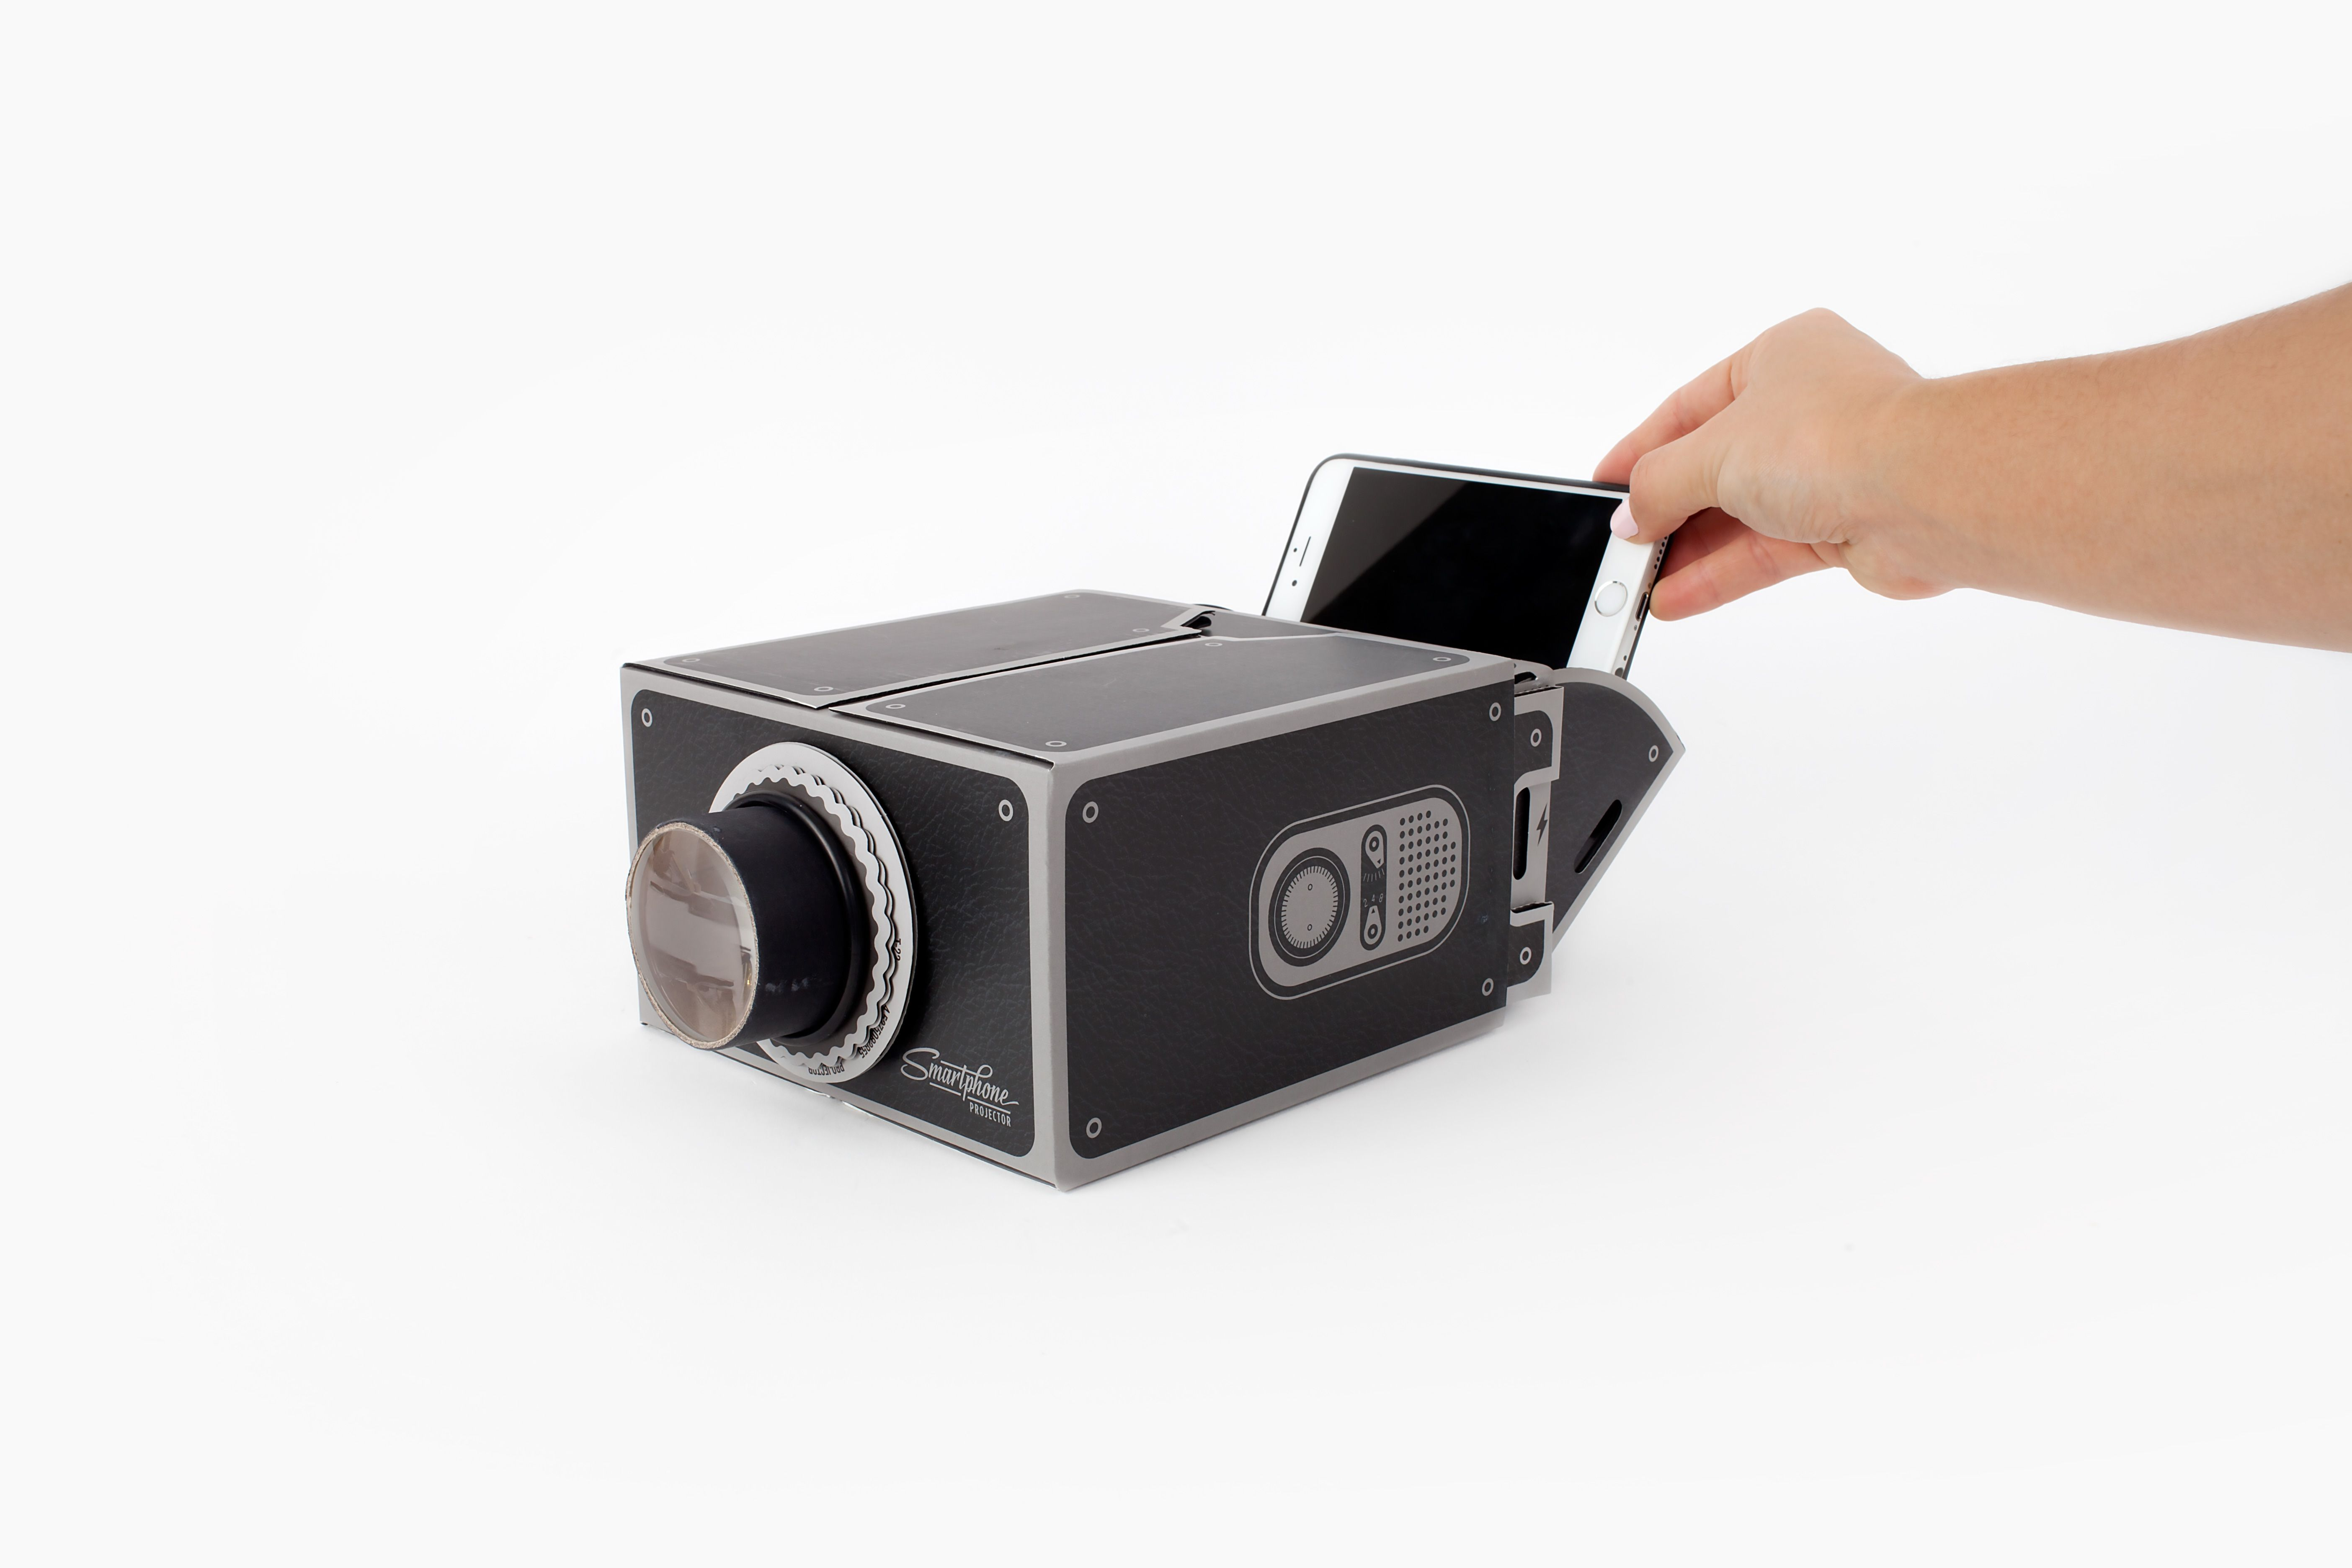 Pop your phone in the Gee-Whiz Smartphone DIY Projector and you'll be able to watch your vids magnified on your wall